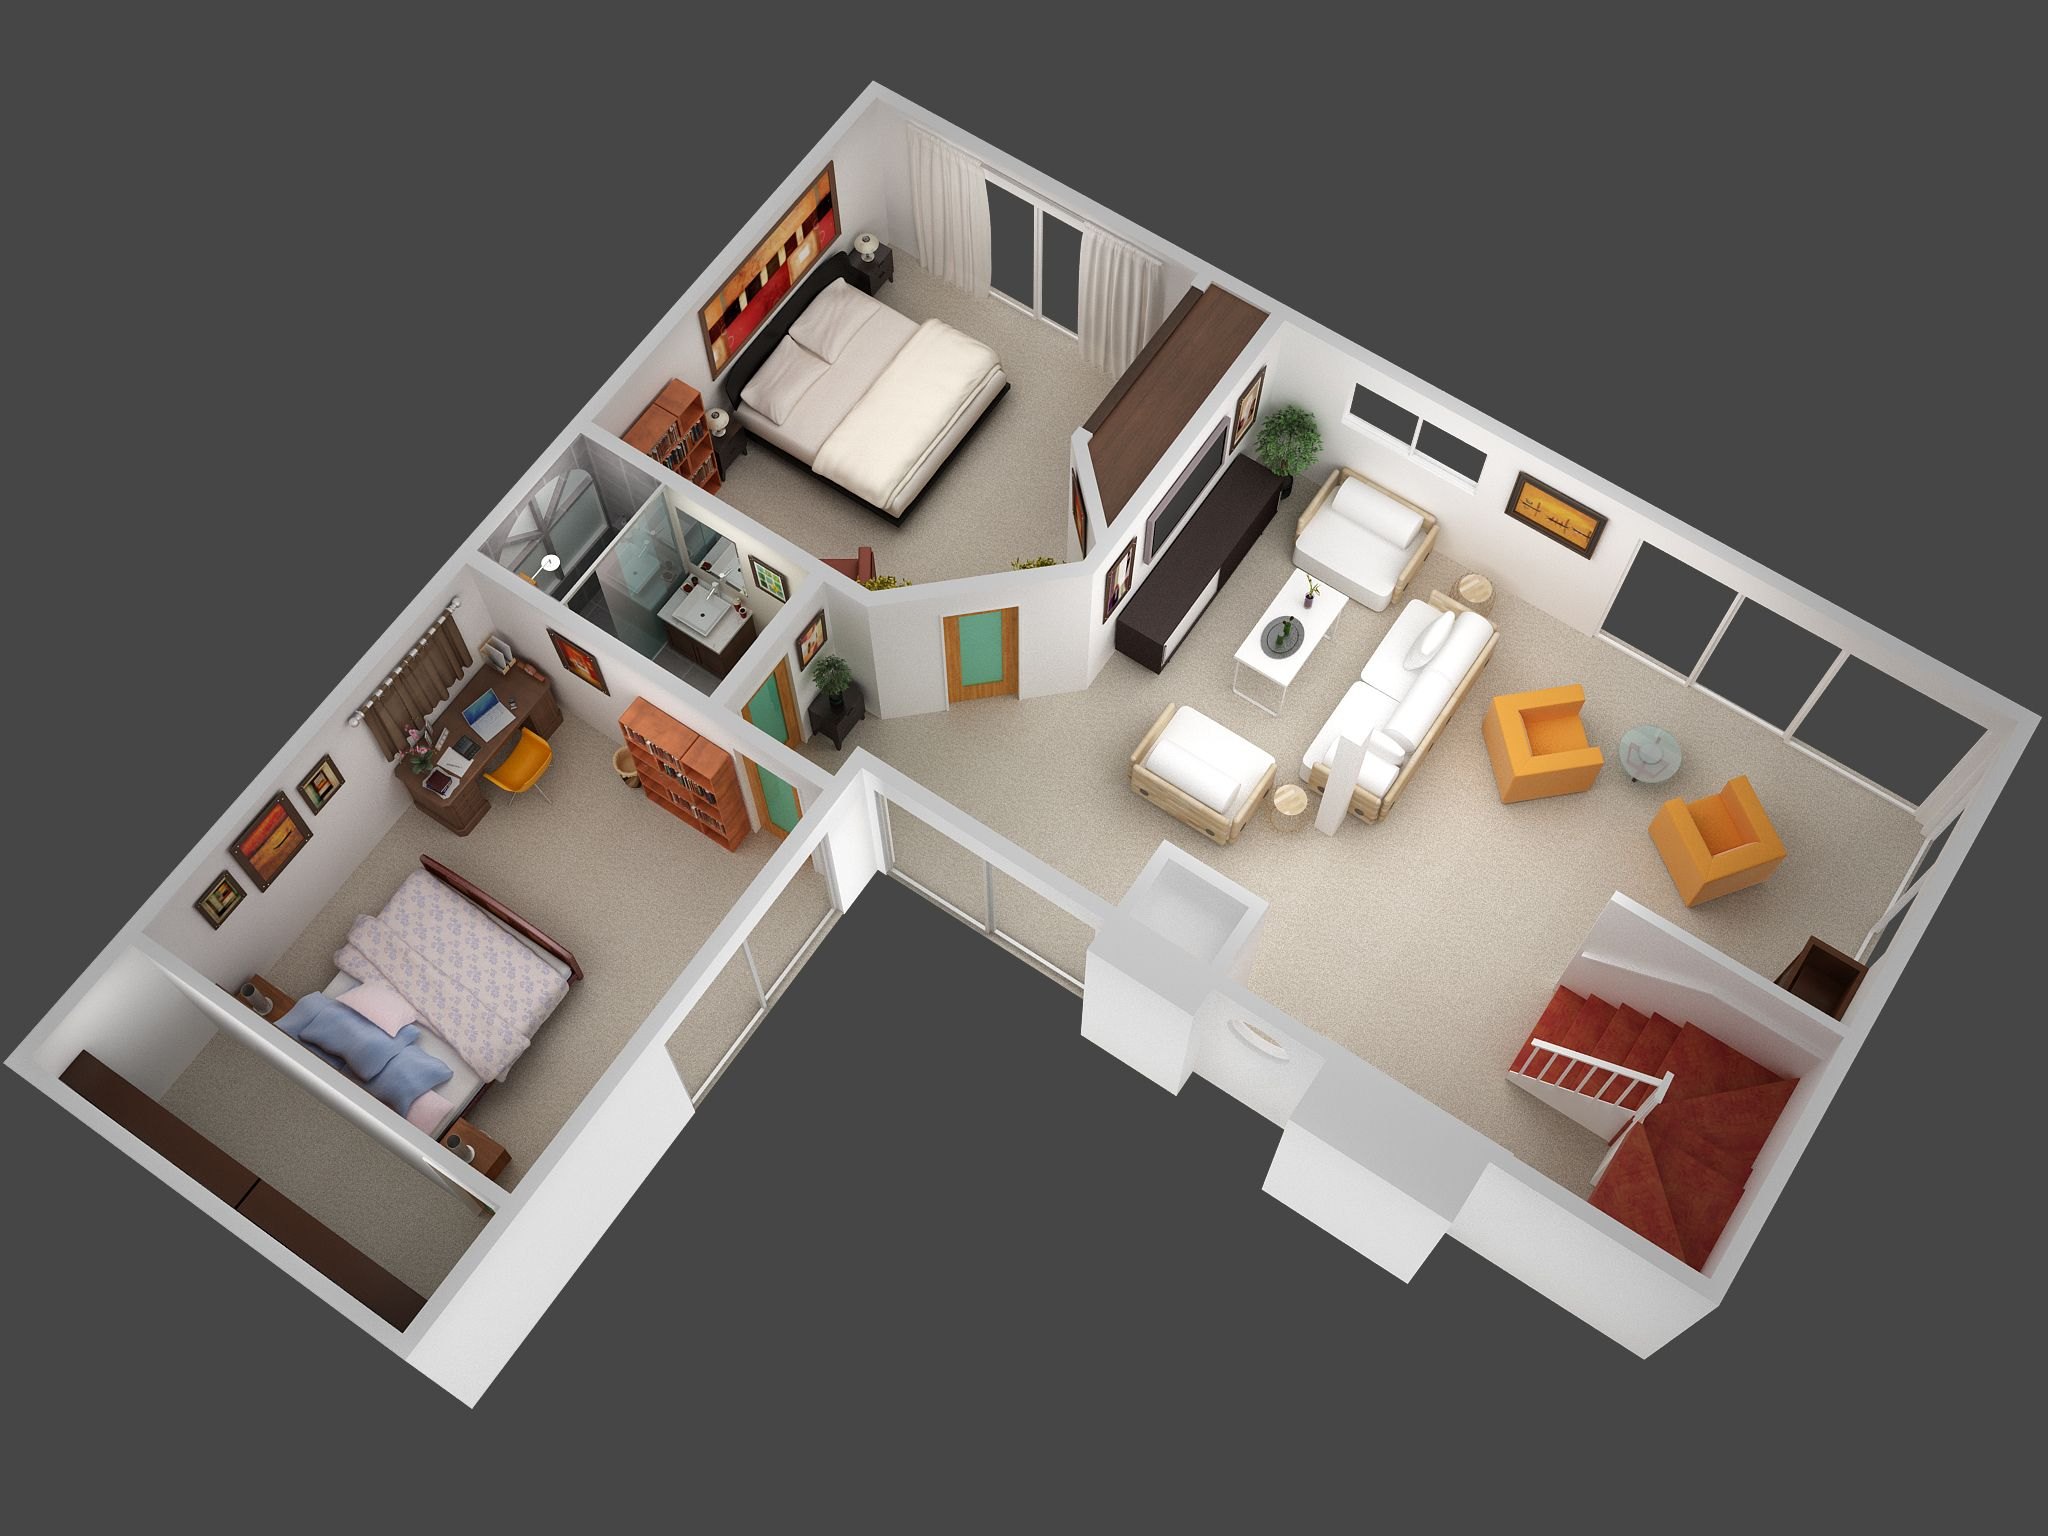 3d Planer 3d Mansion Floor Plans 3d Plan View Render Of Unit 5 Jpg